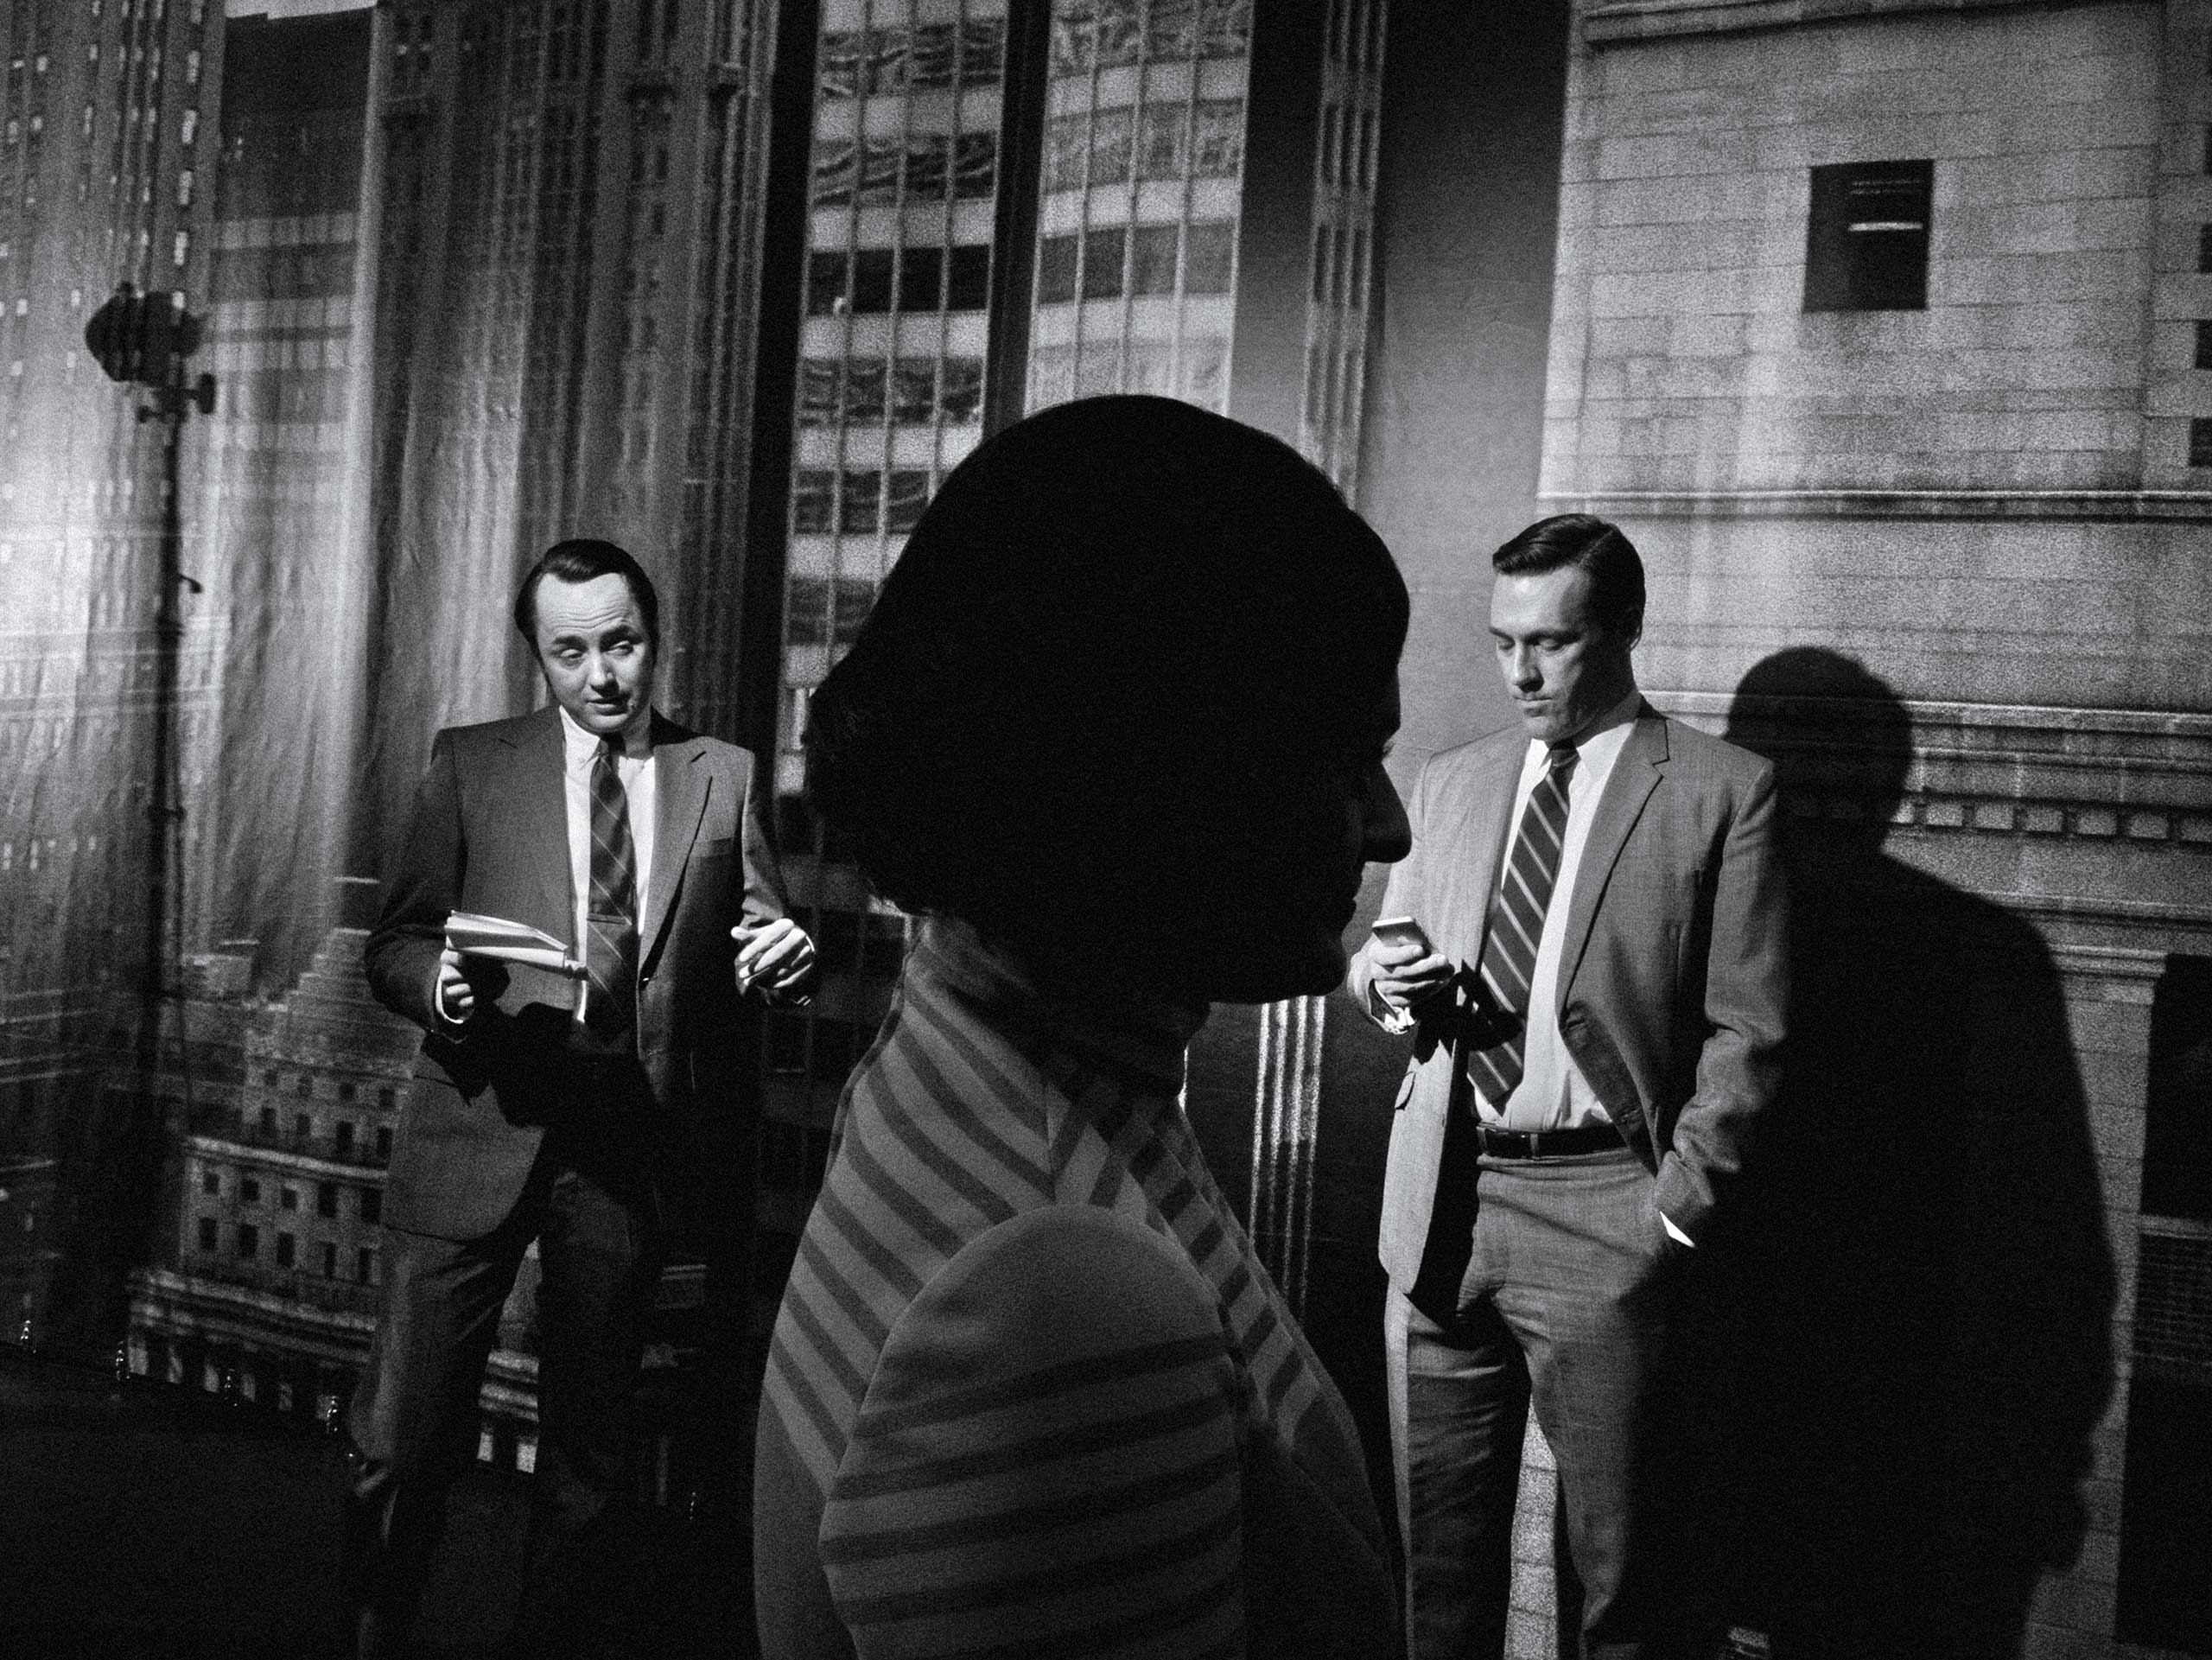 Vincent Kartheiser (left), Elisabeth Moss (center) and Jon Hamm (right) take a break on the set of Mad Men. From  'Mad Men' Up Close: Photos From the Set of the Celebrated Show